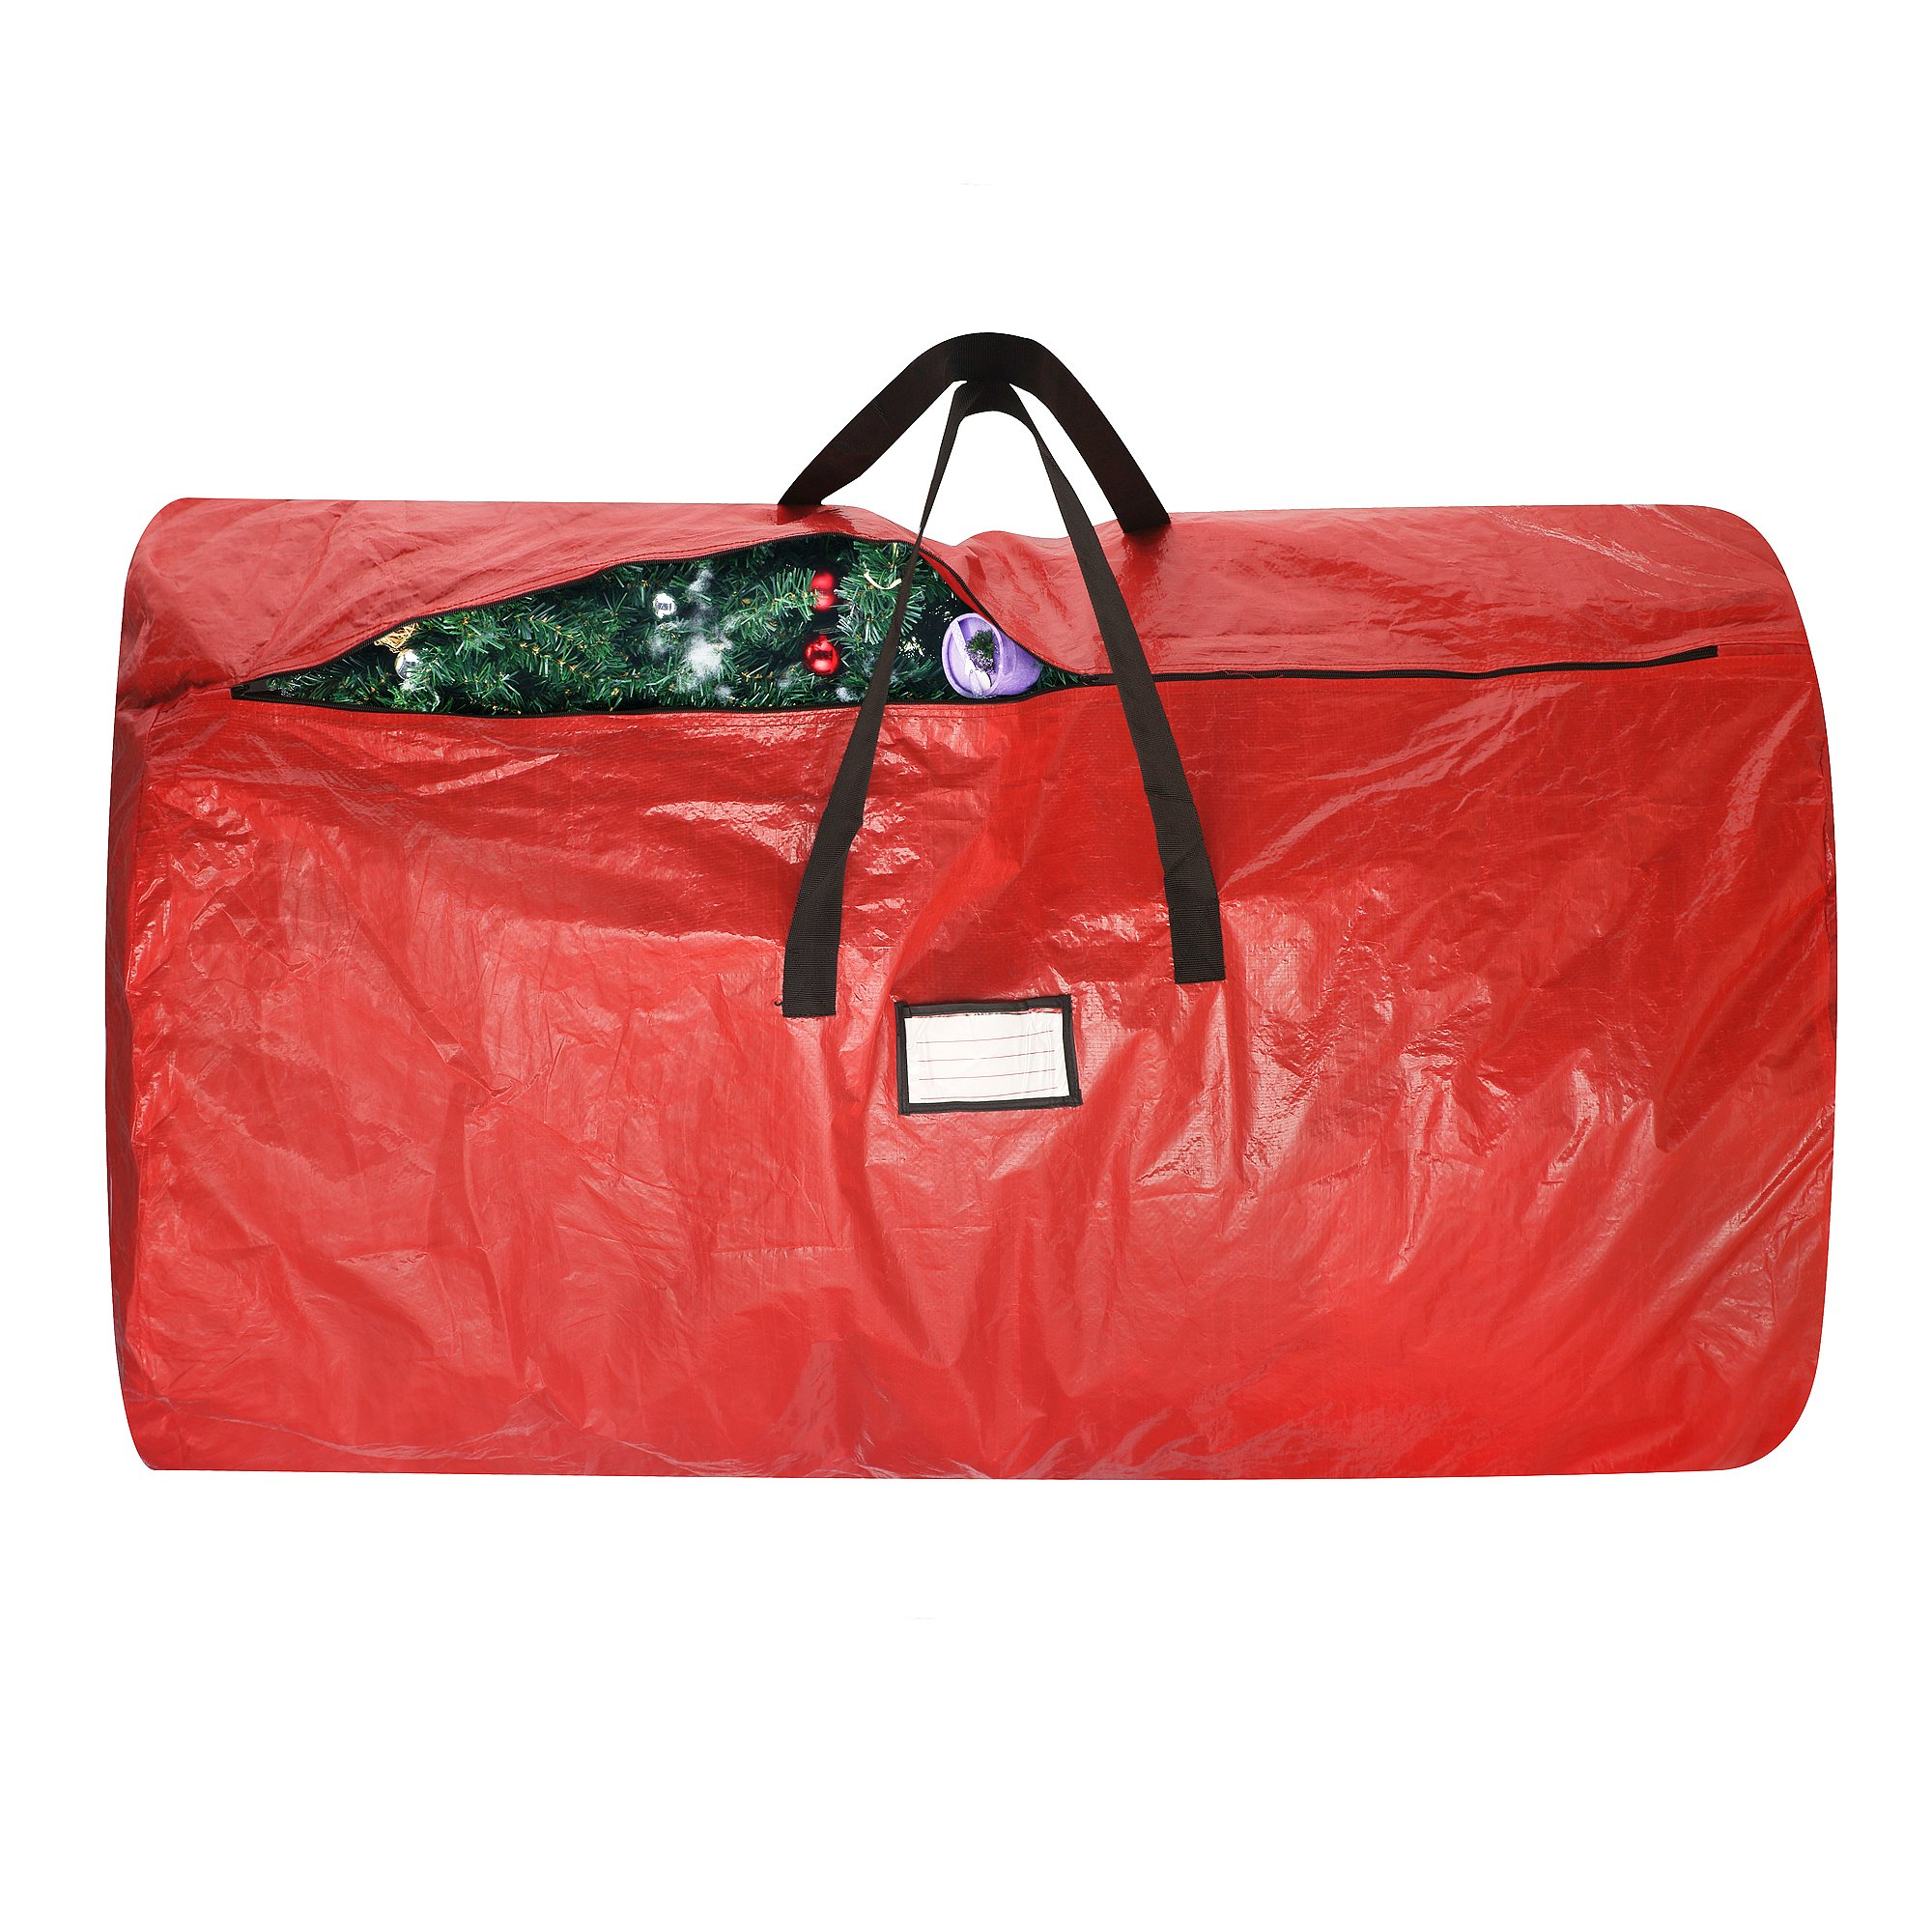 elf stor premium red holiday christmas tree storage bag large 30 x 52 bag ebay. Black Bedroom Furniture Sets. Home Design Ideas